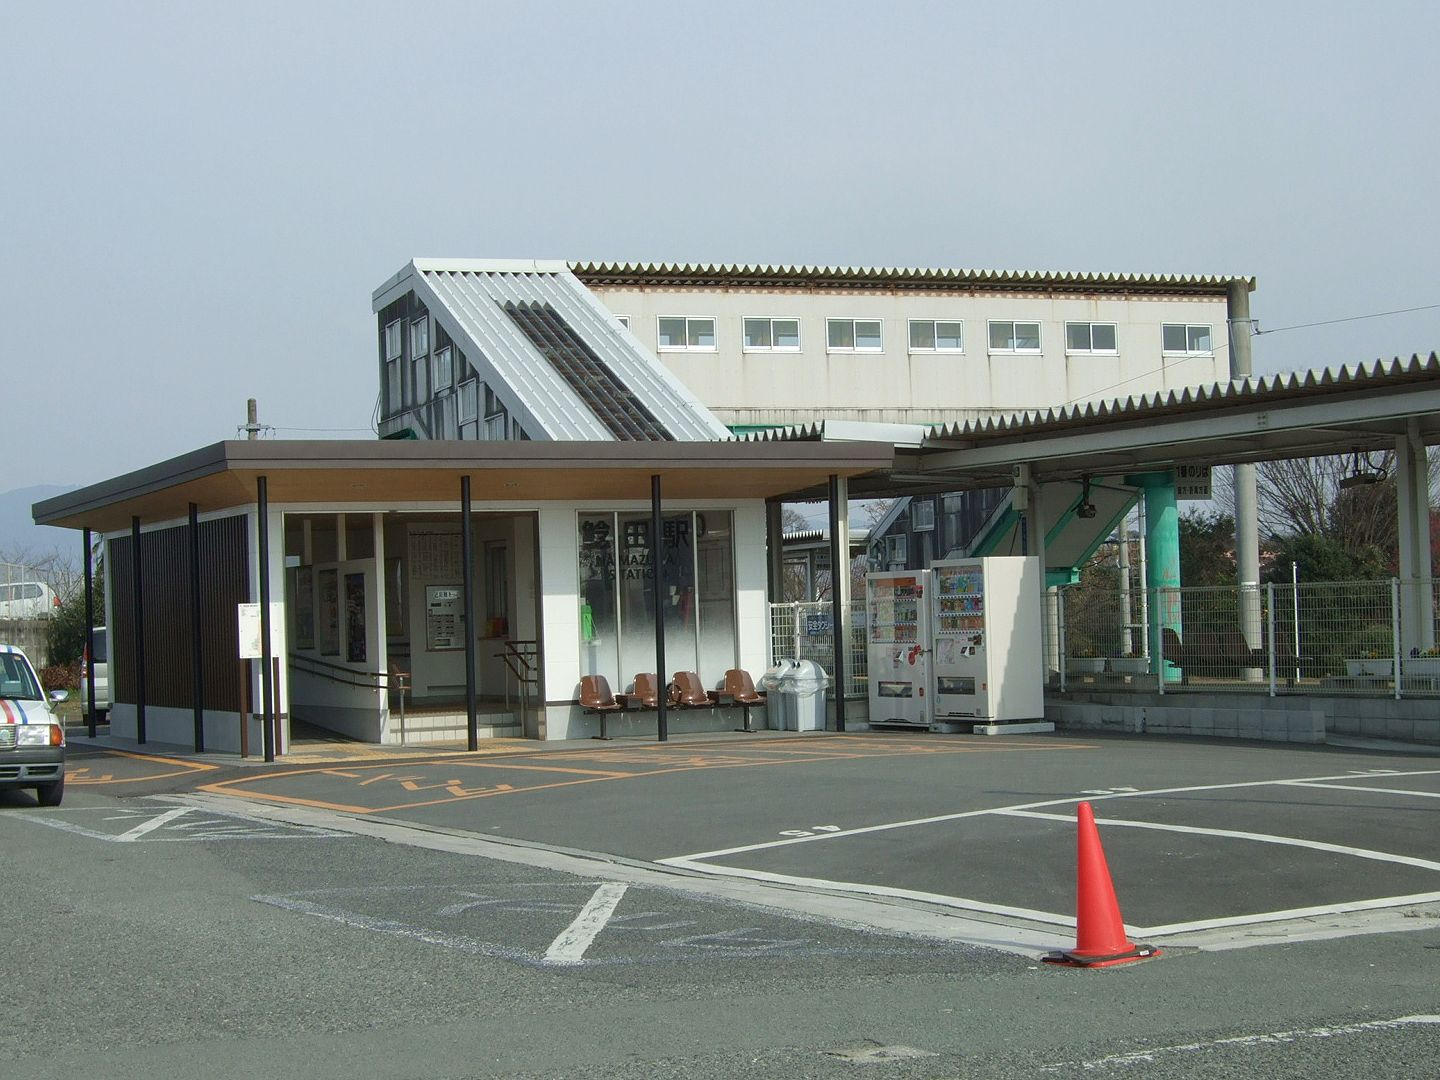 http://upload.wikimedia.org/wikipedia/commons/3/39/JRKyushu_Namazuta_Station02.jpg